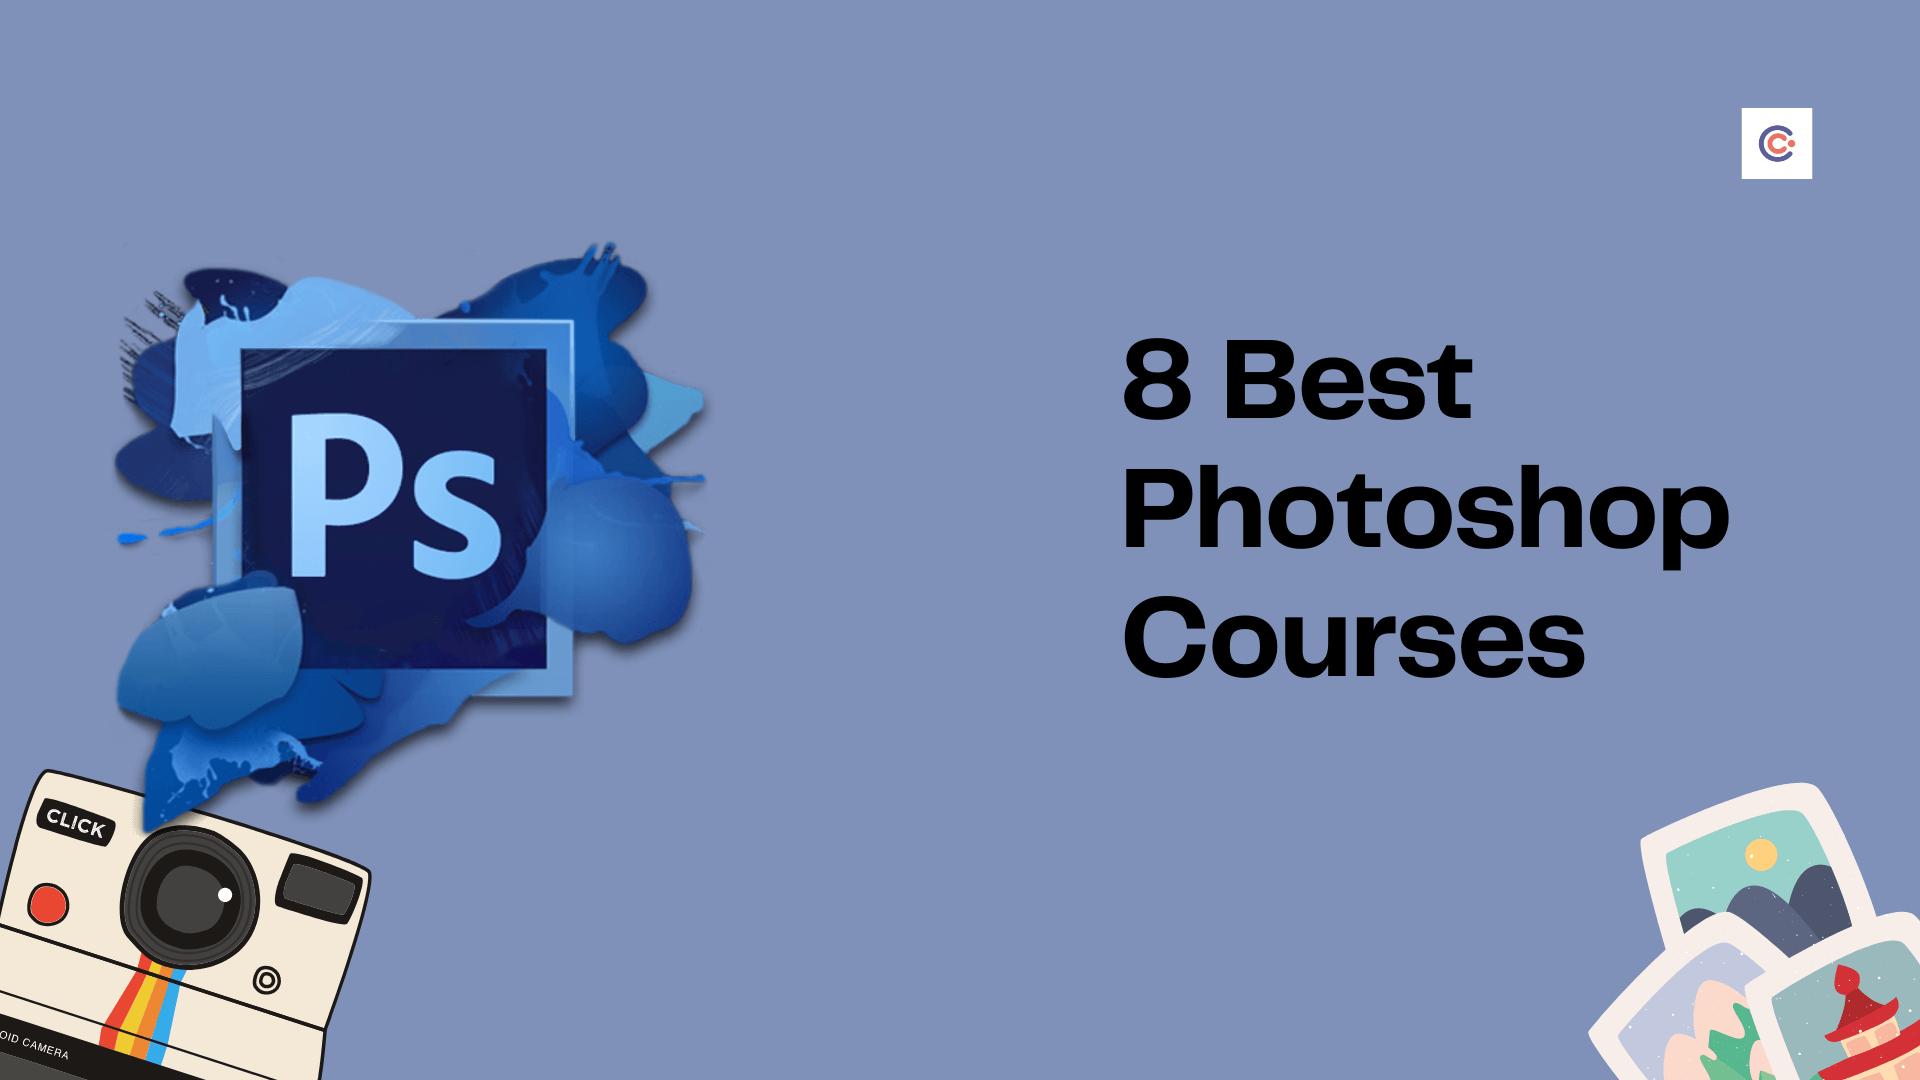 8 Best Photoshop Tutorials - Learn Photoshop Online